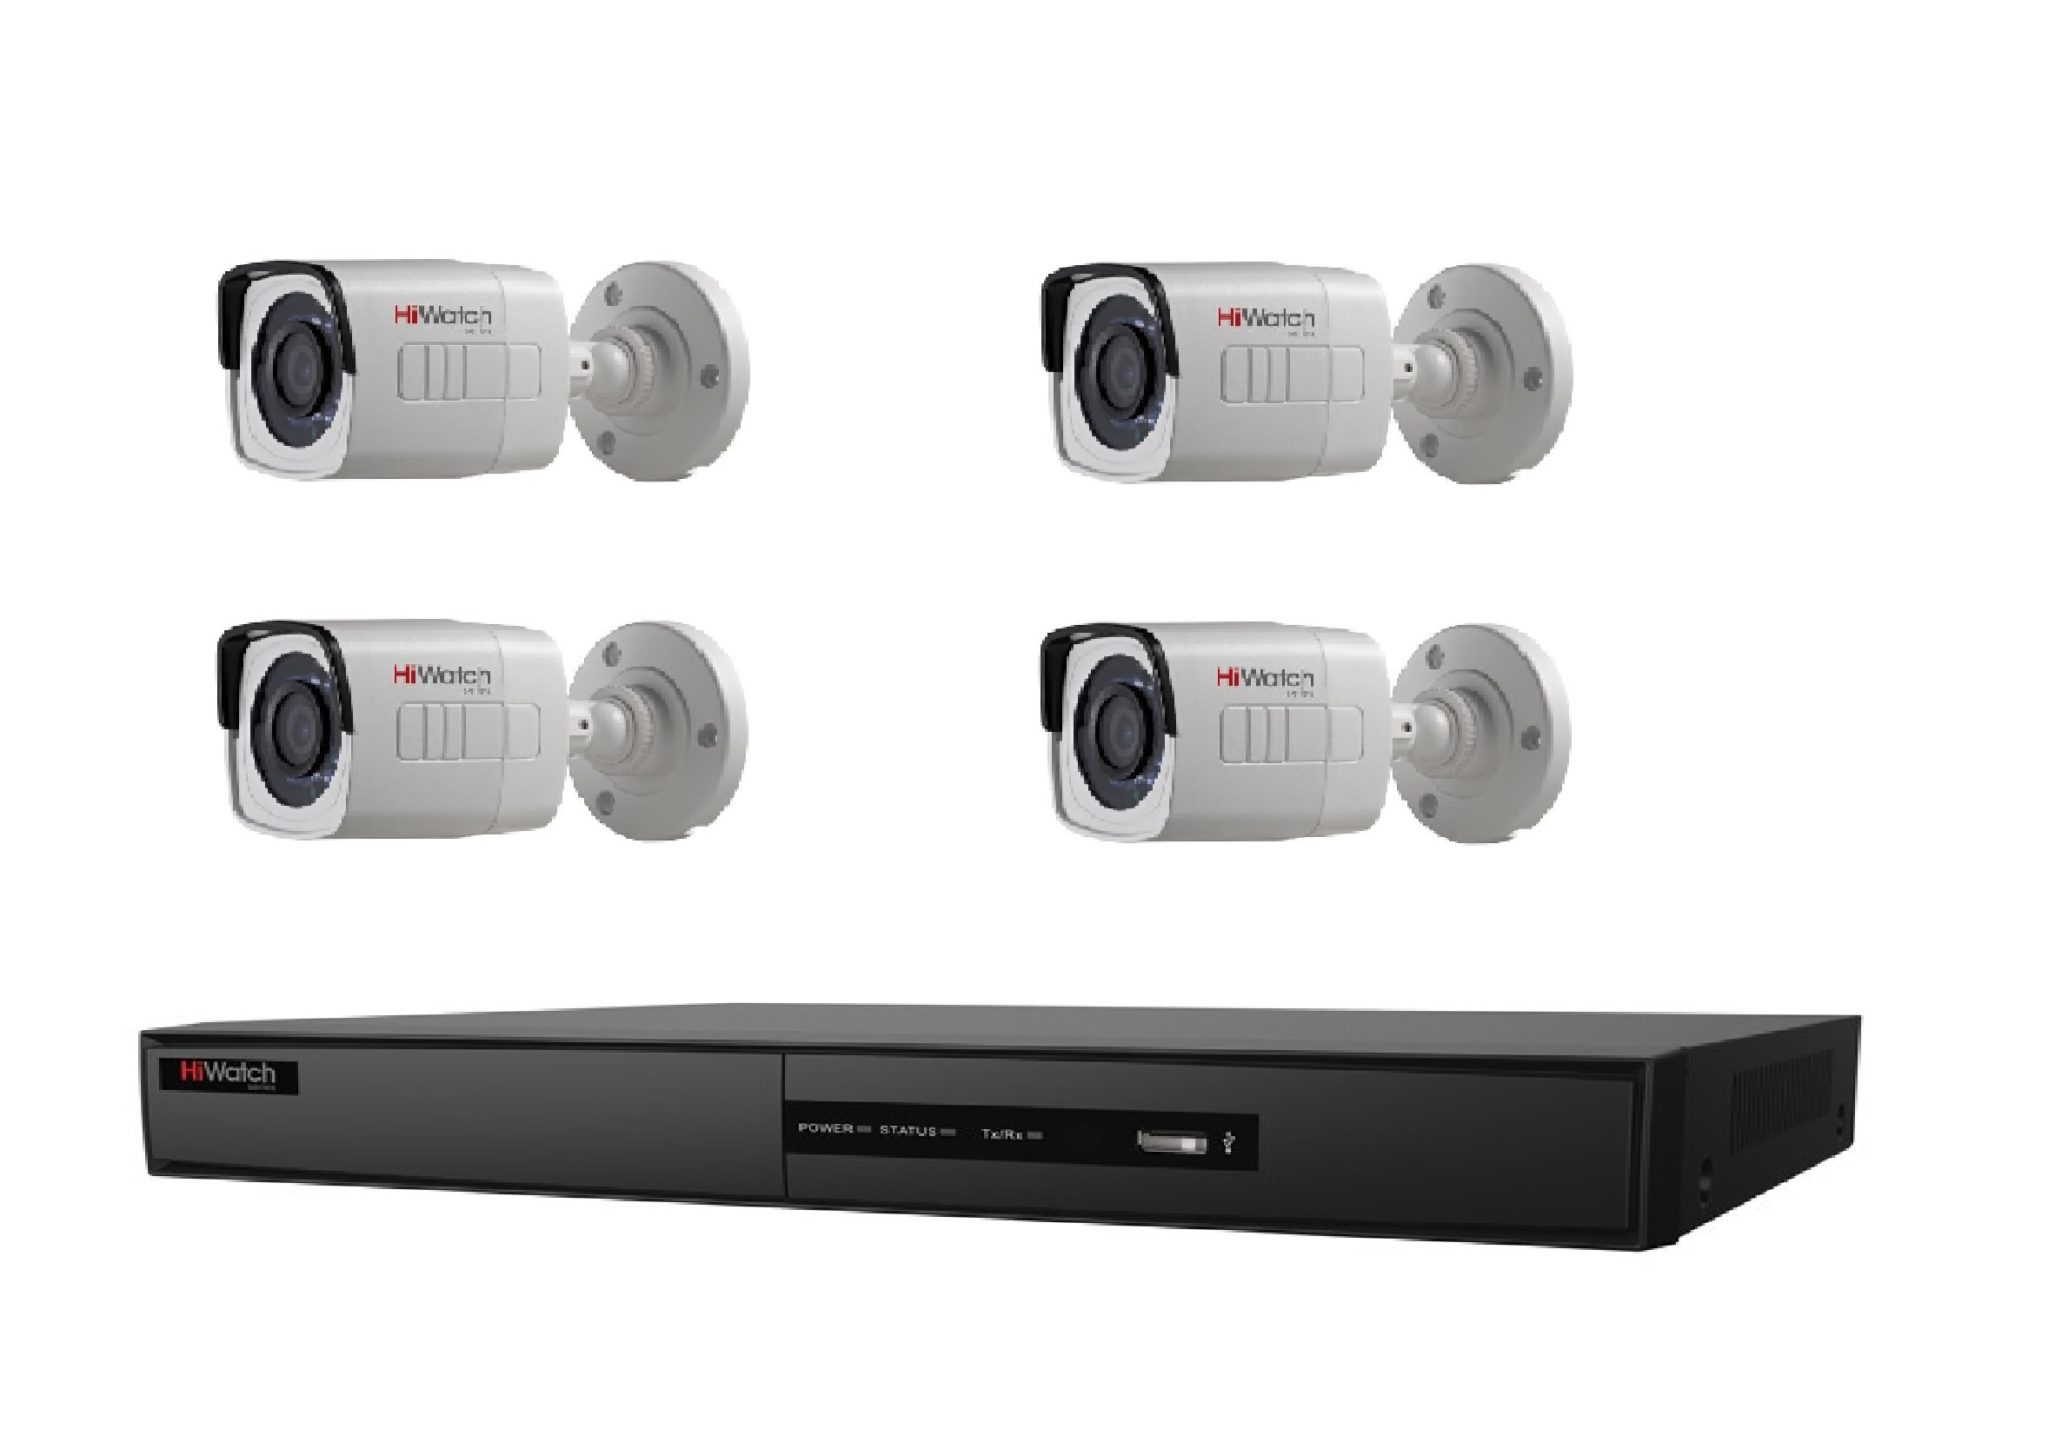 Diy Home Security Camera Reviews Diy 4 Cctv Camera Package Hiwatch By Hikvision Vip 360